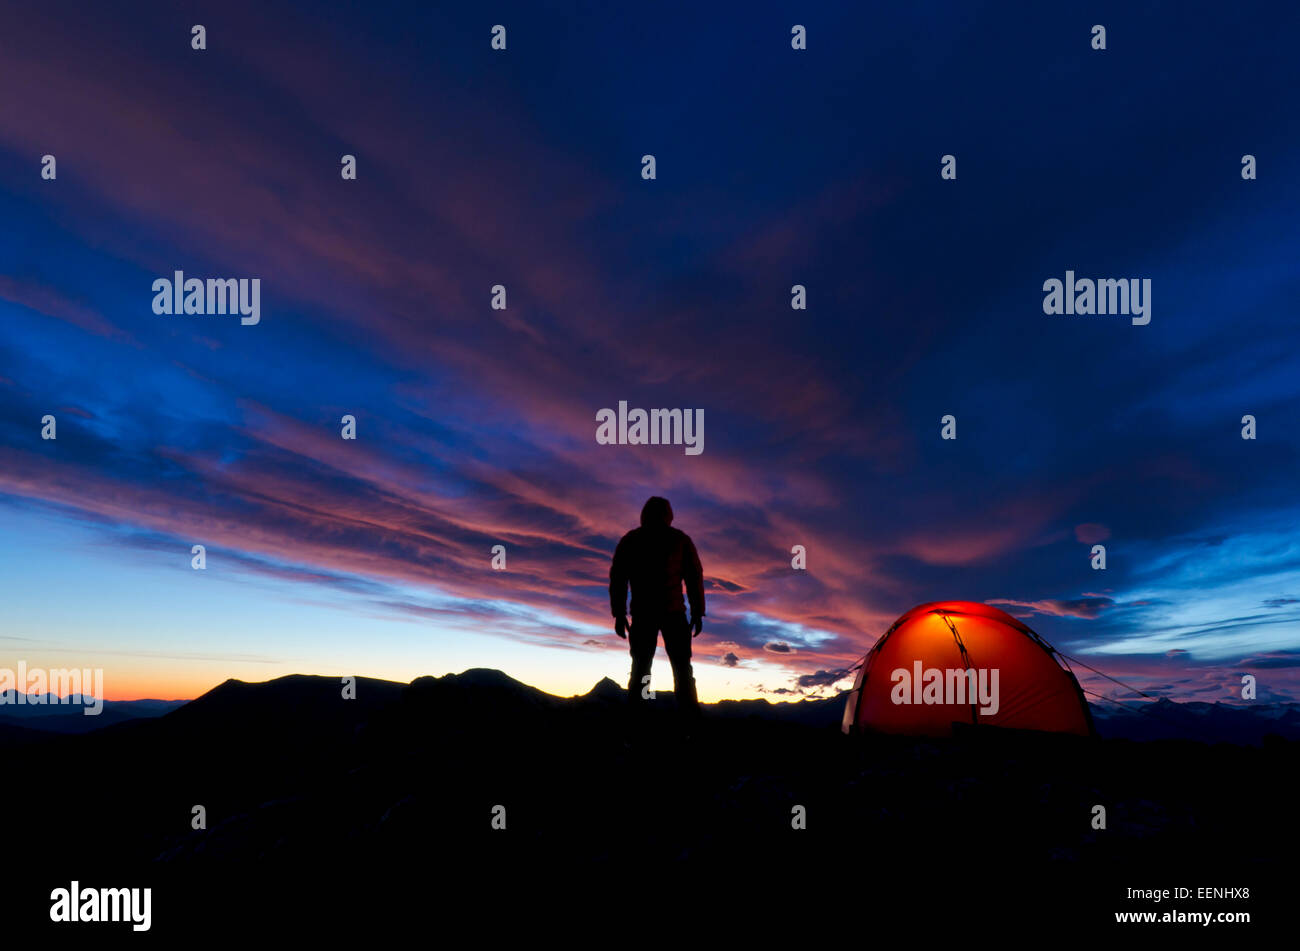 Man stands in the dawn -lit next to his tent, Moere und Romsdal Fylke, Vestland,  Norway, September - Stock Image